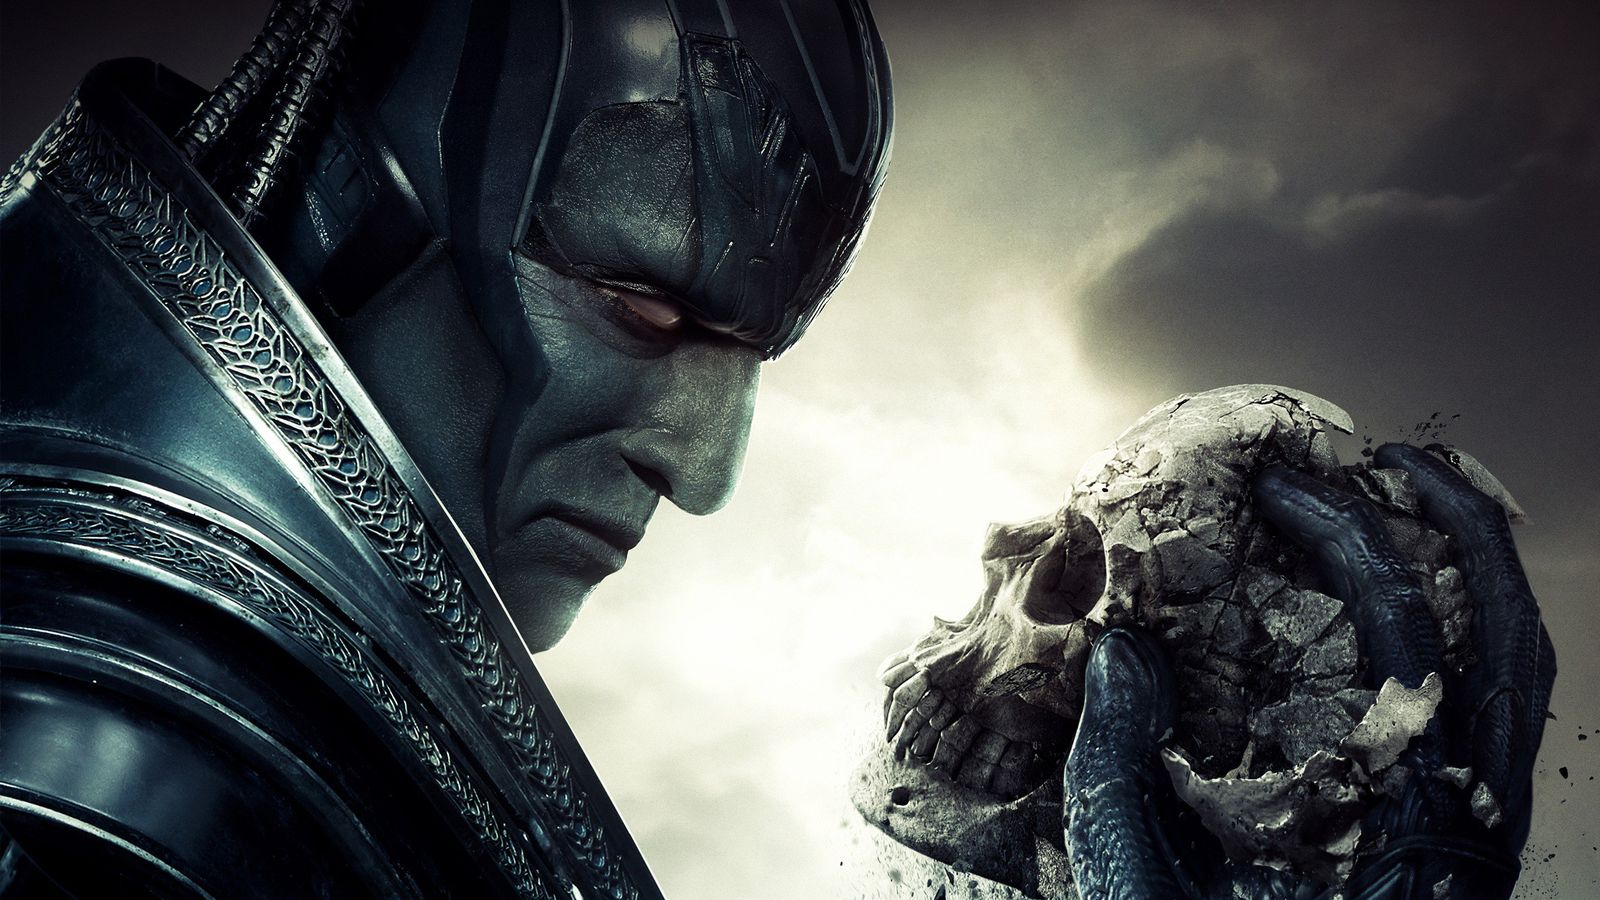 X Men Apocalypses Post Credits Scene Is A Quick Tease Of What Might Be Next For The Series